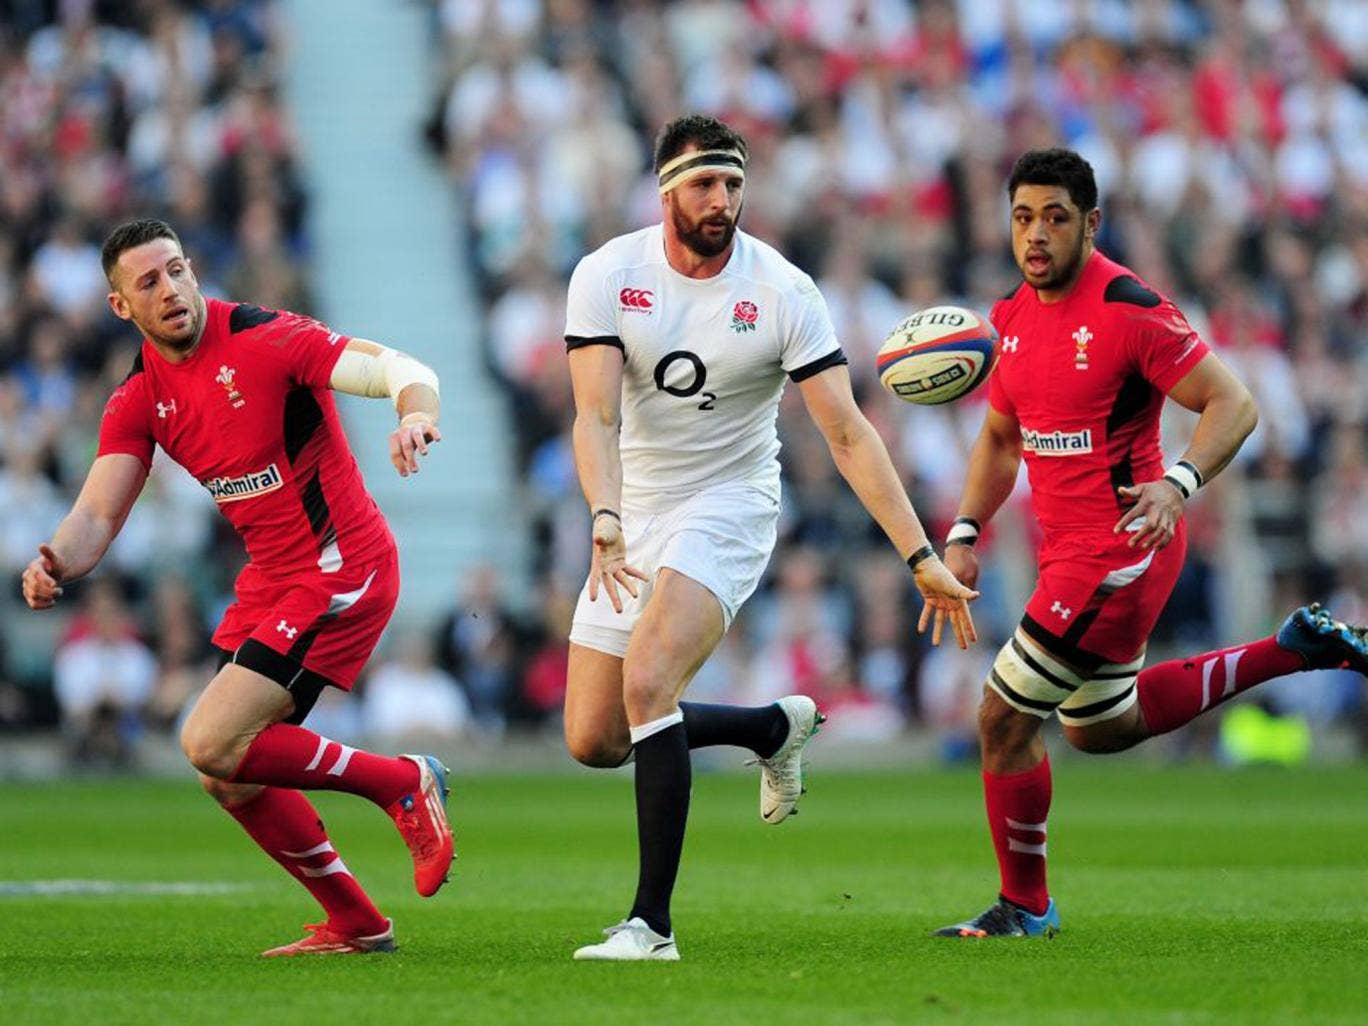 Tom Wood knows that Italy will be no pushovers in their own back yard in the Six Nations finale